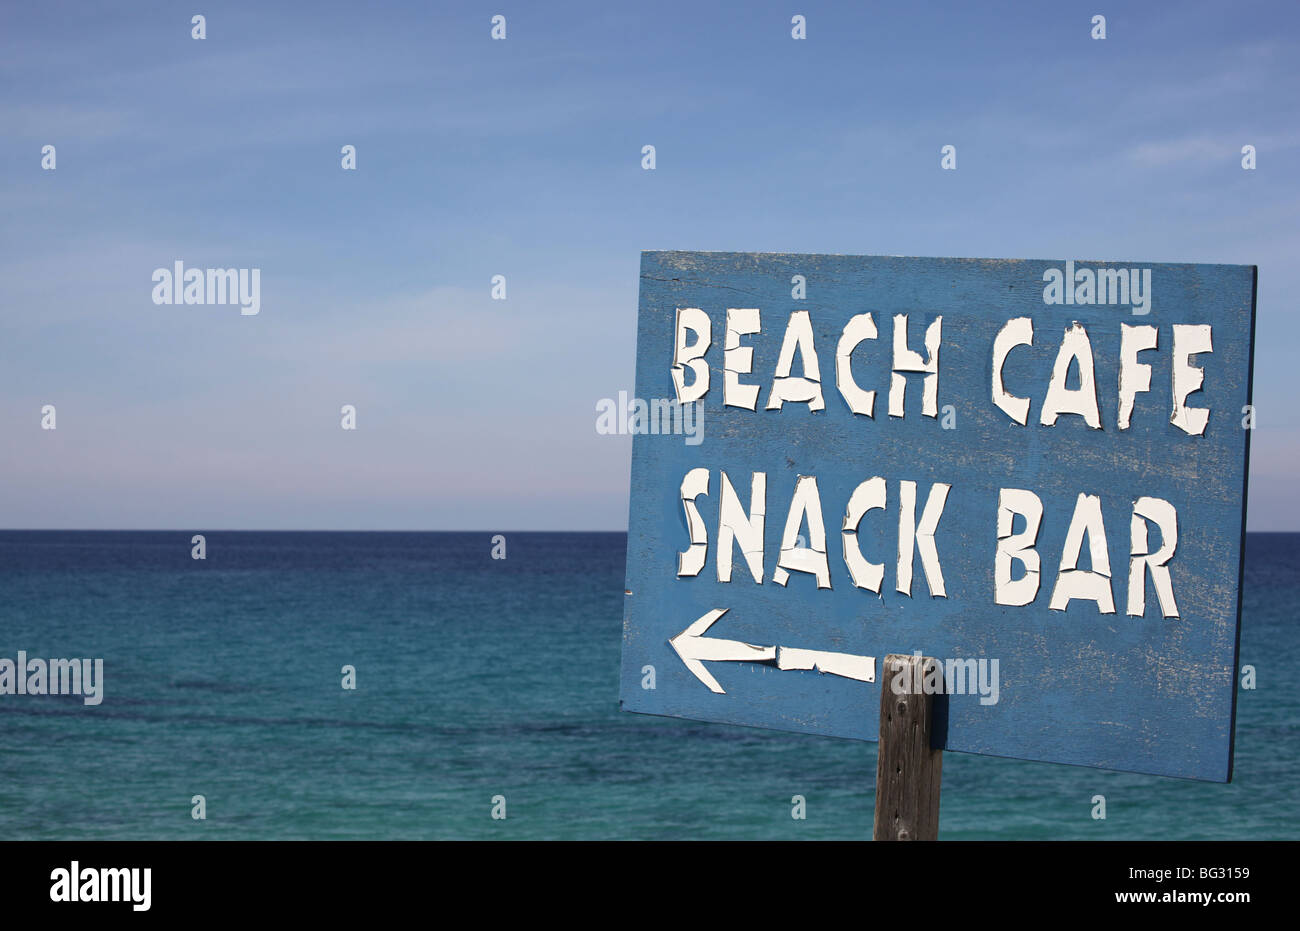 Weather battered sign directing people to a beach cafe and snack bar beside the sea - Stock Image